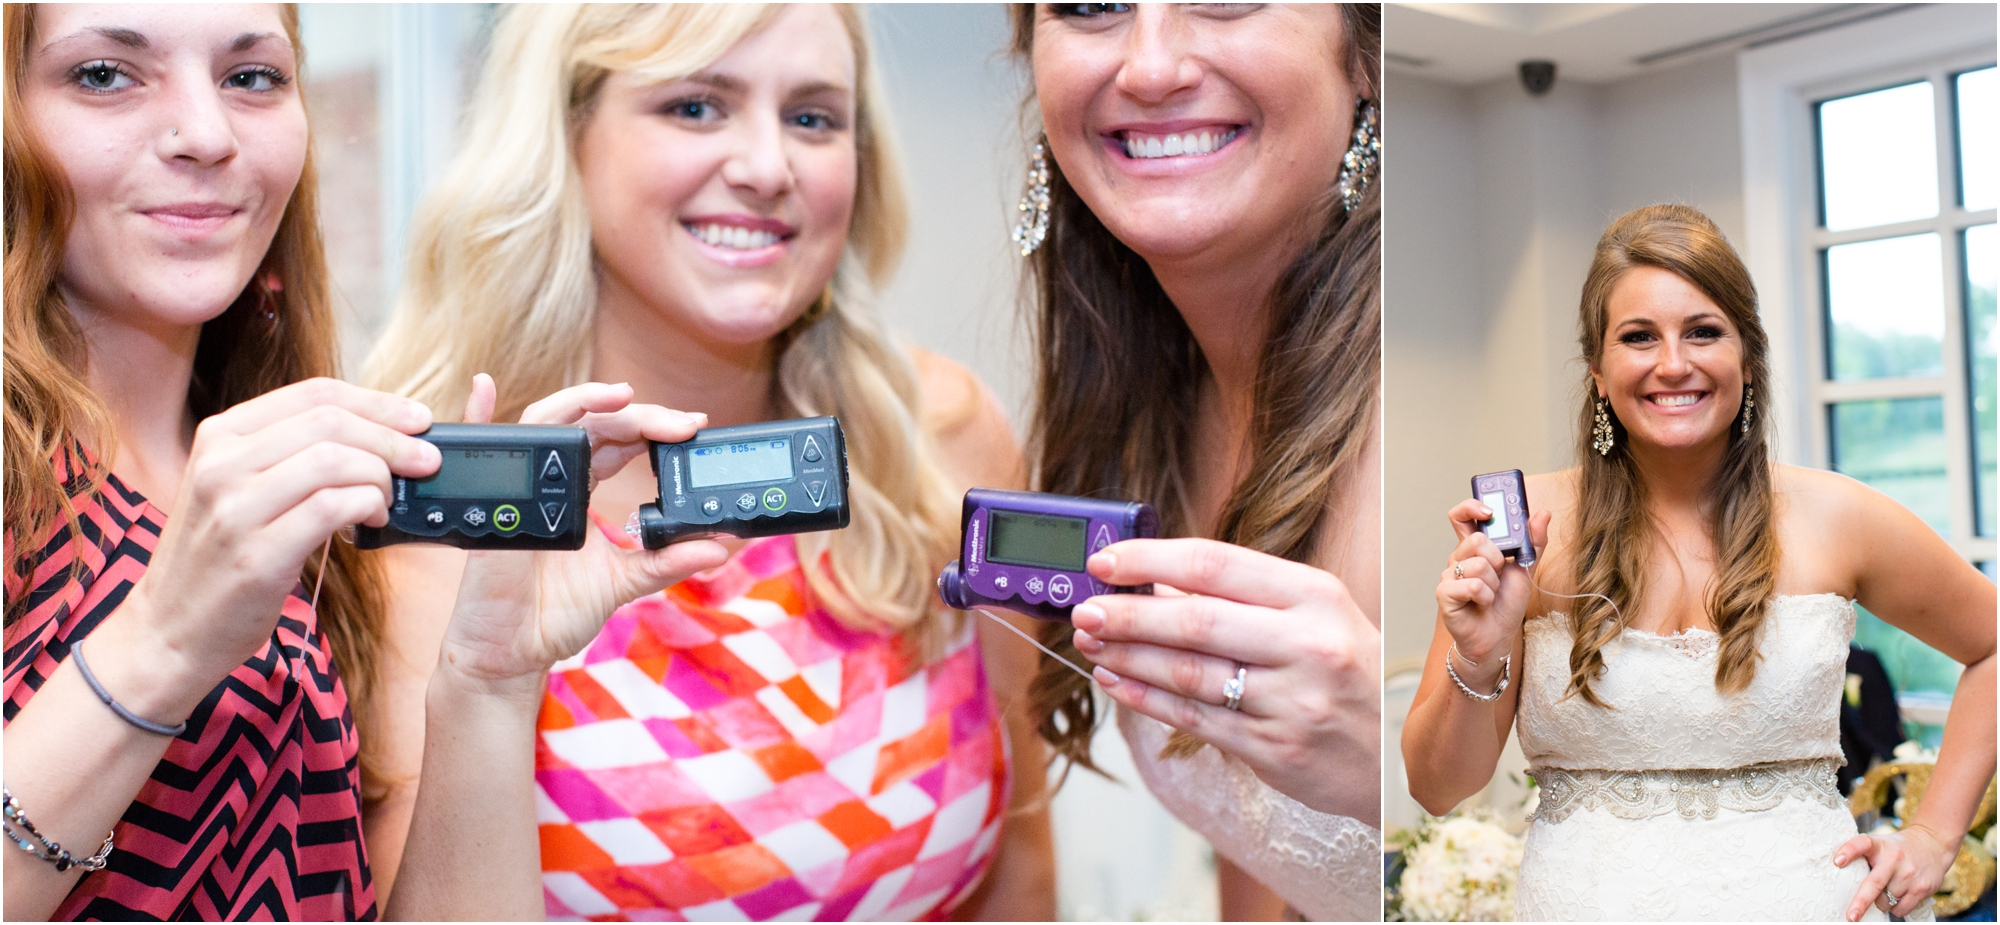 These girls are diabetic and ROCKING LIFE!! Bethany wore her pump in her dress the whole day!